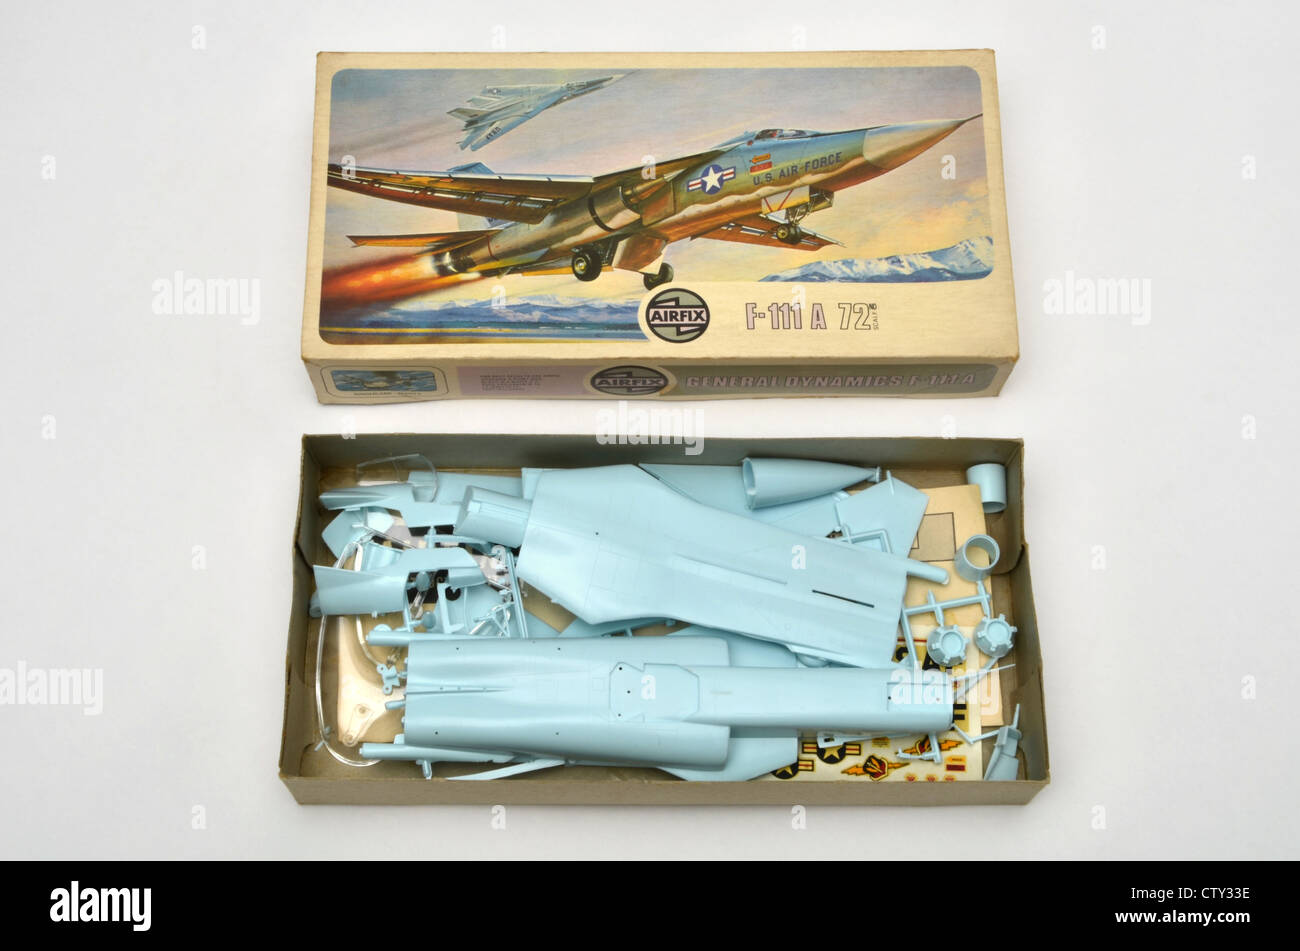 Airfix 1/72 scale F-111A plastic model construction kit showing parts in box - Stock Image